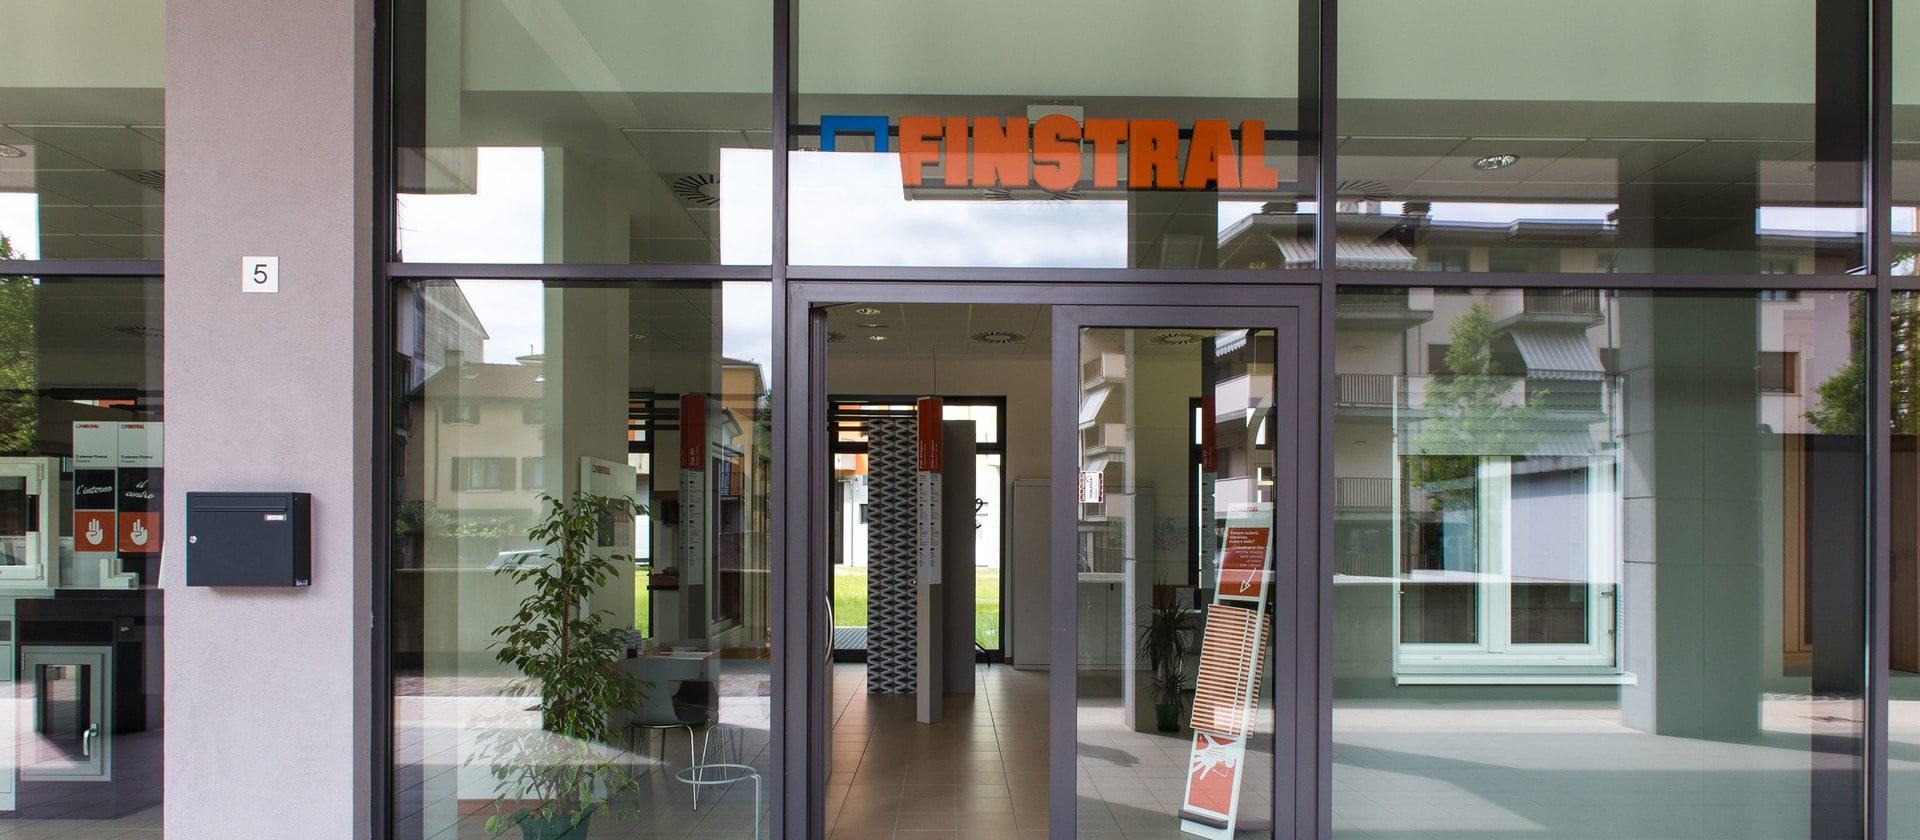 Studio Finstral Verona